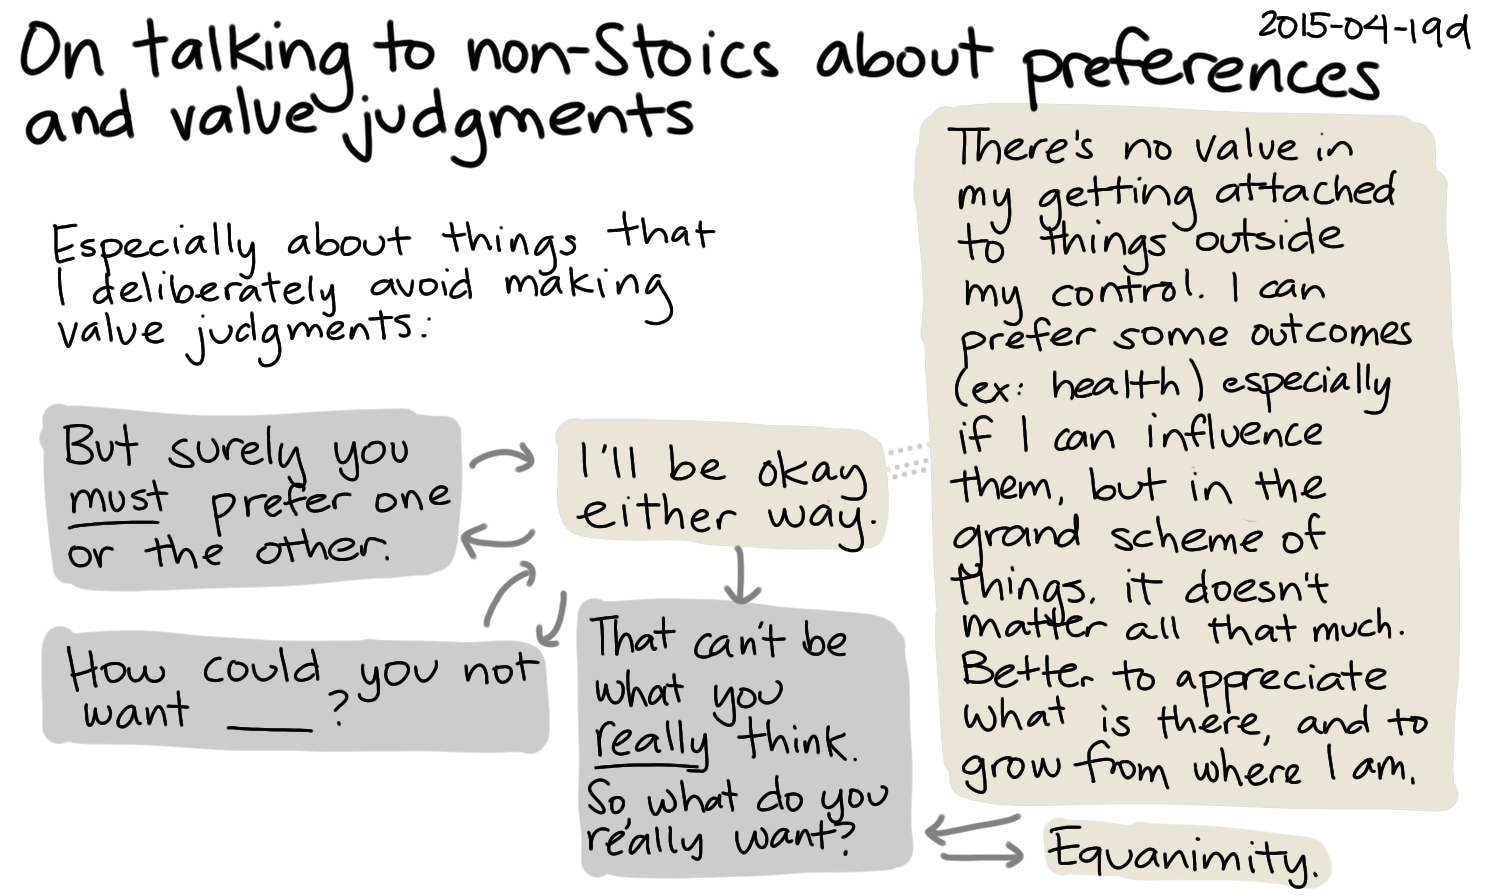 2015-04-19d On talking to non-Stoics about preferences and value judgments -- index card #stoicism.png